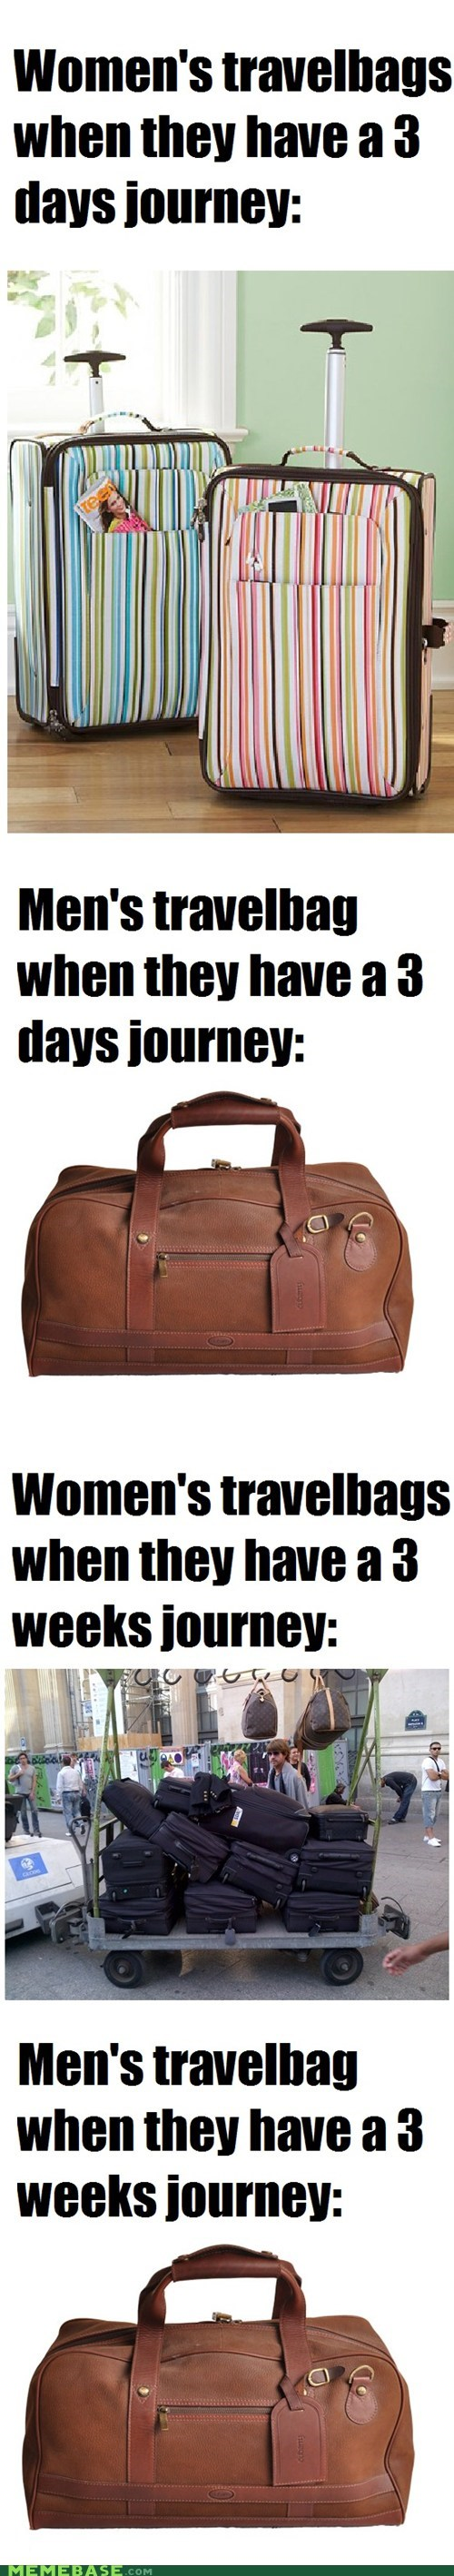 Memes,men,Travel,women